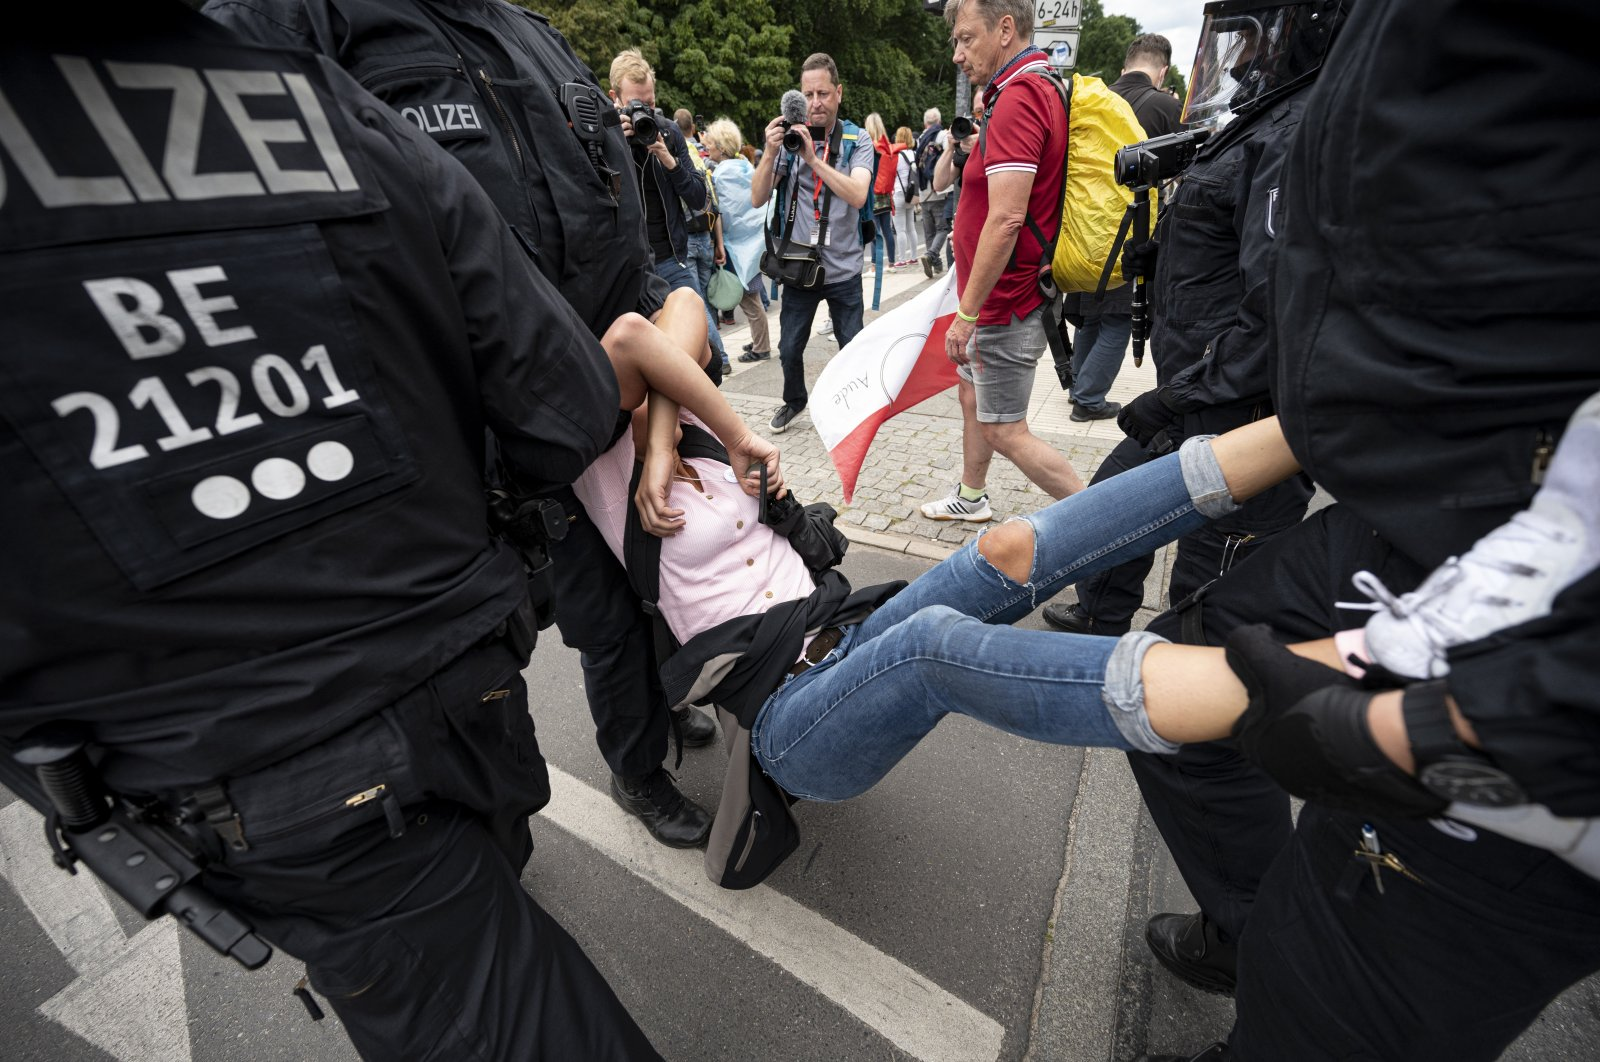 Police arrest a demonstrator at an unannounced demonstration against COVID-19 restrictions at the Victory Column, in Berlin,  Germany, Aug. 1, 2021. (dpa via AP)